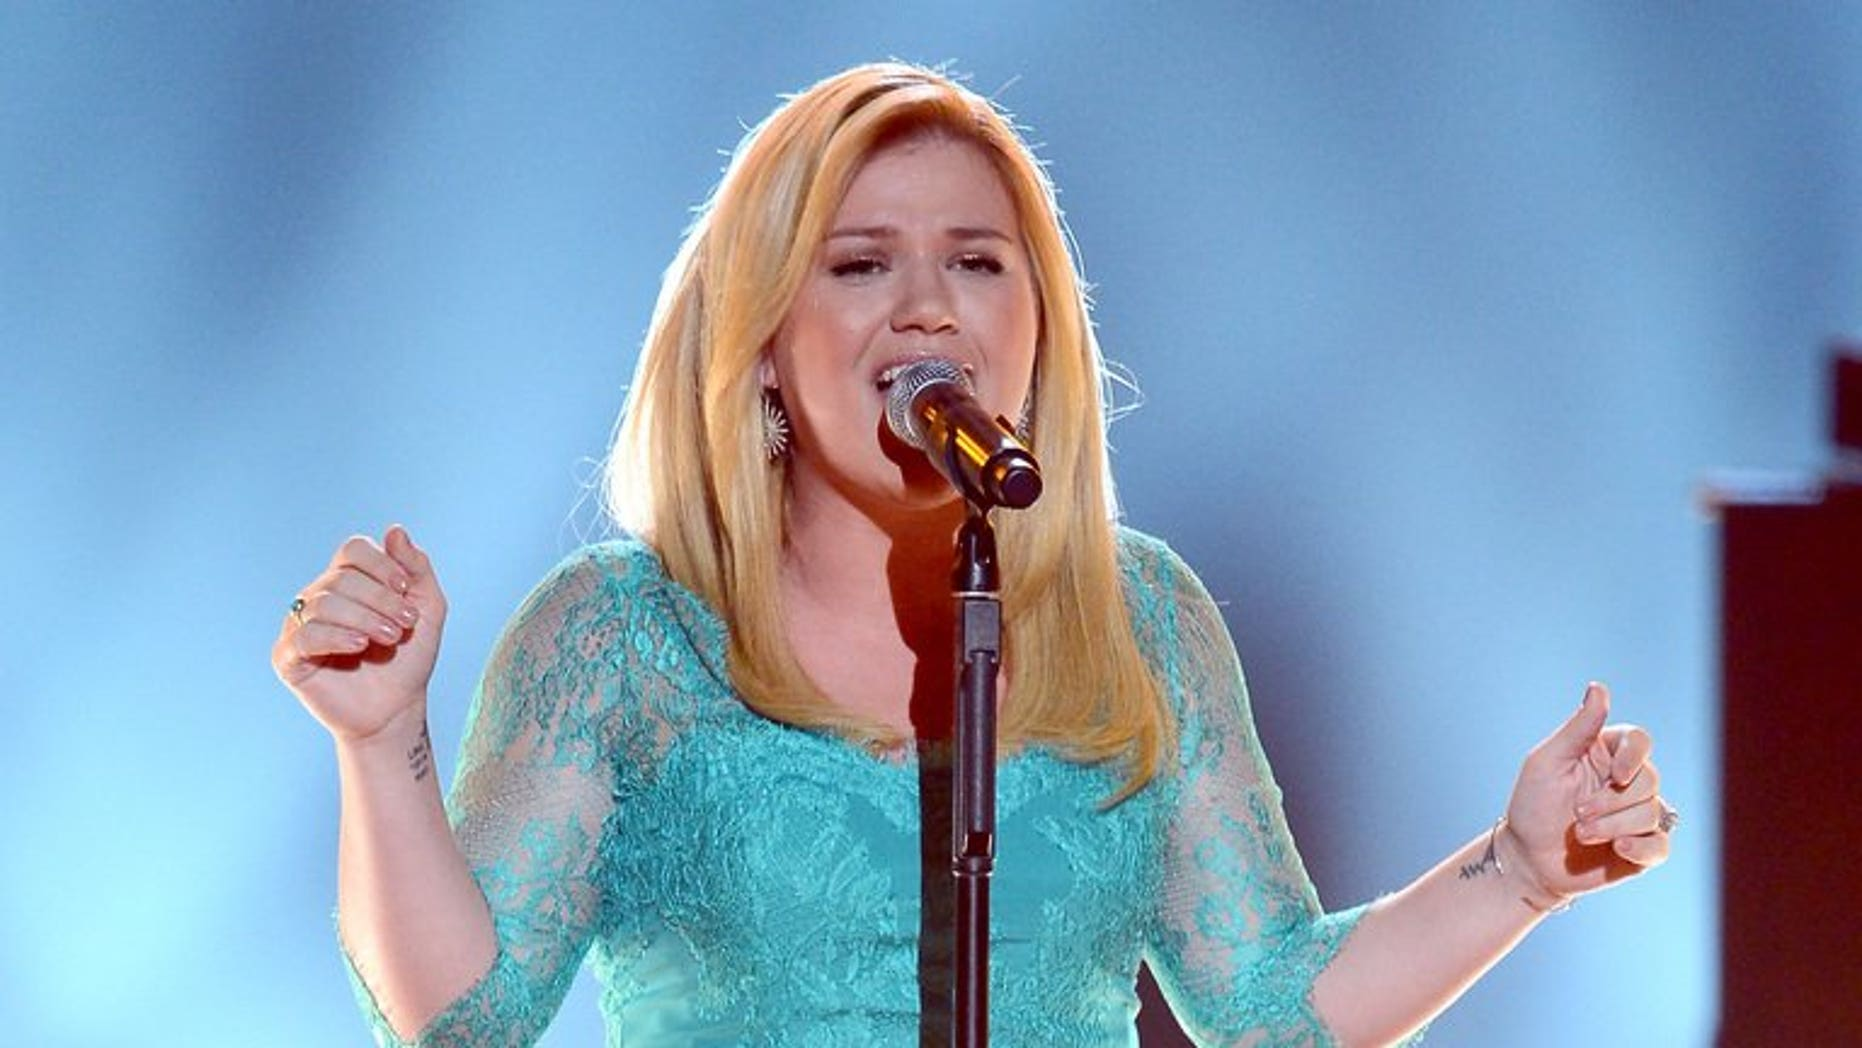 US singer Kelly Clarkson performs during the Annual Academy of Country Music Awards in Las Vegas, Nevada on April 7, 2013. The singer has been foiled in her attempt to take home a ring once owned by Jane Austen, after a British museum said it had raised enough money to buy it back.